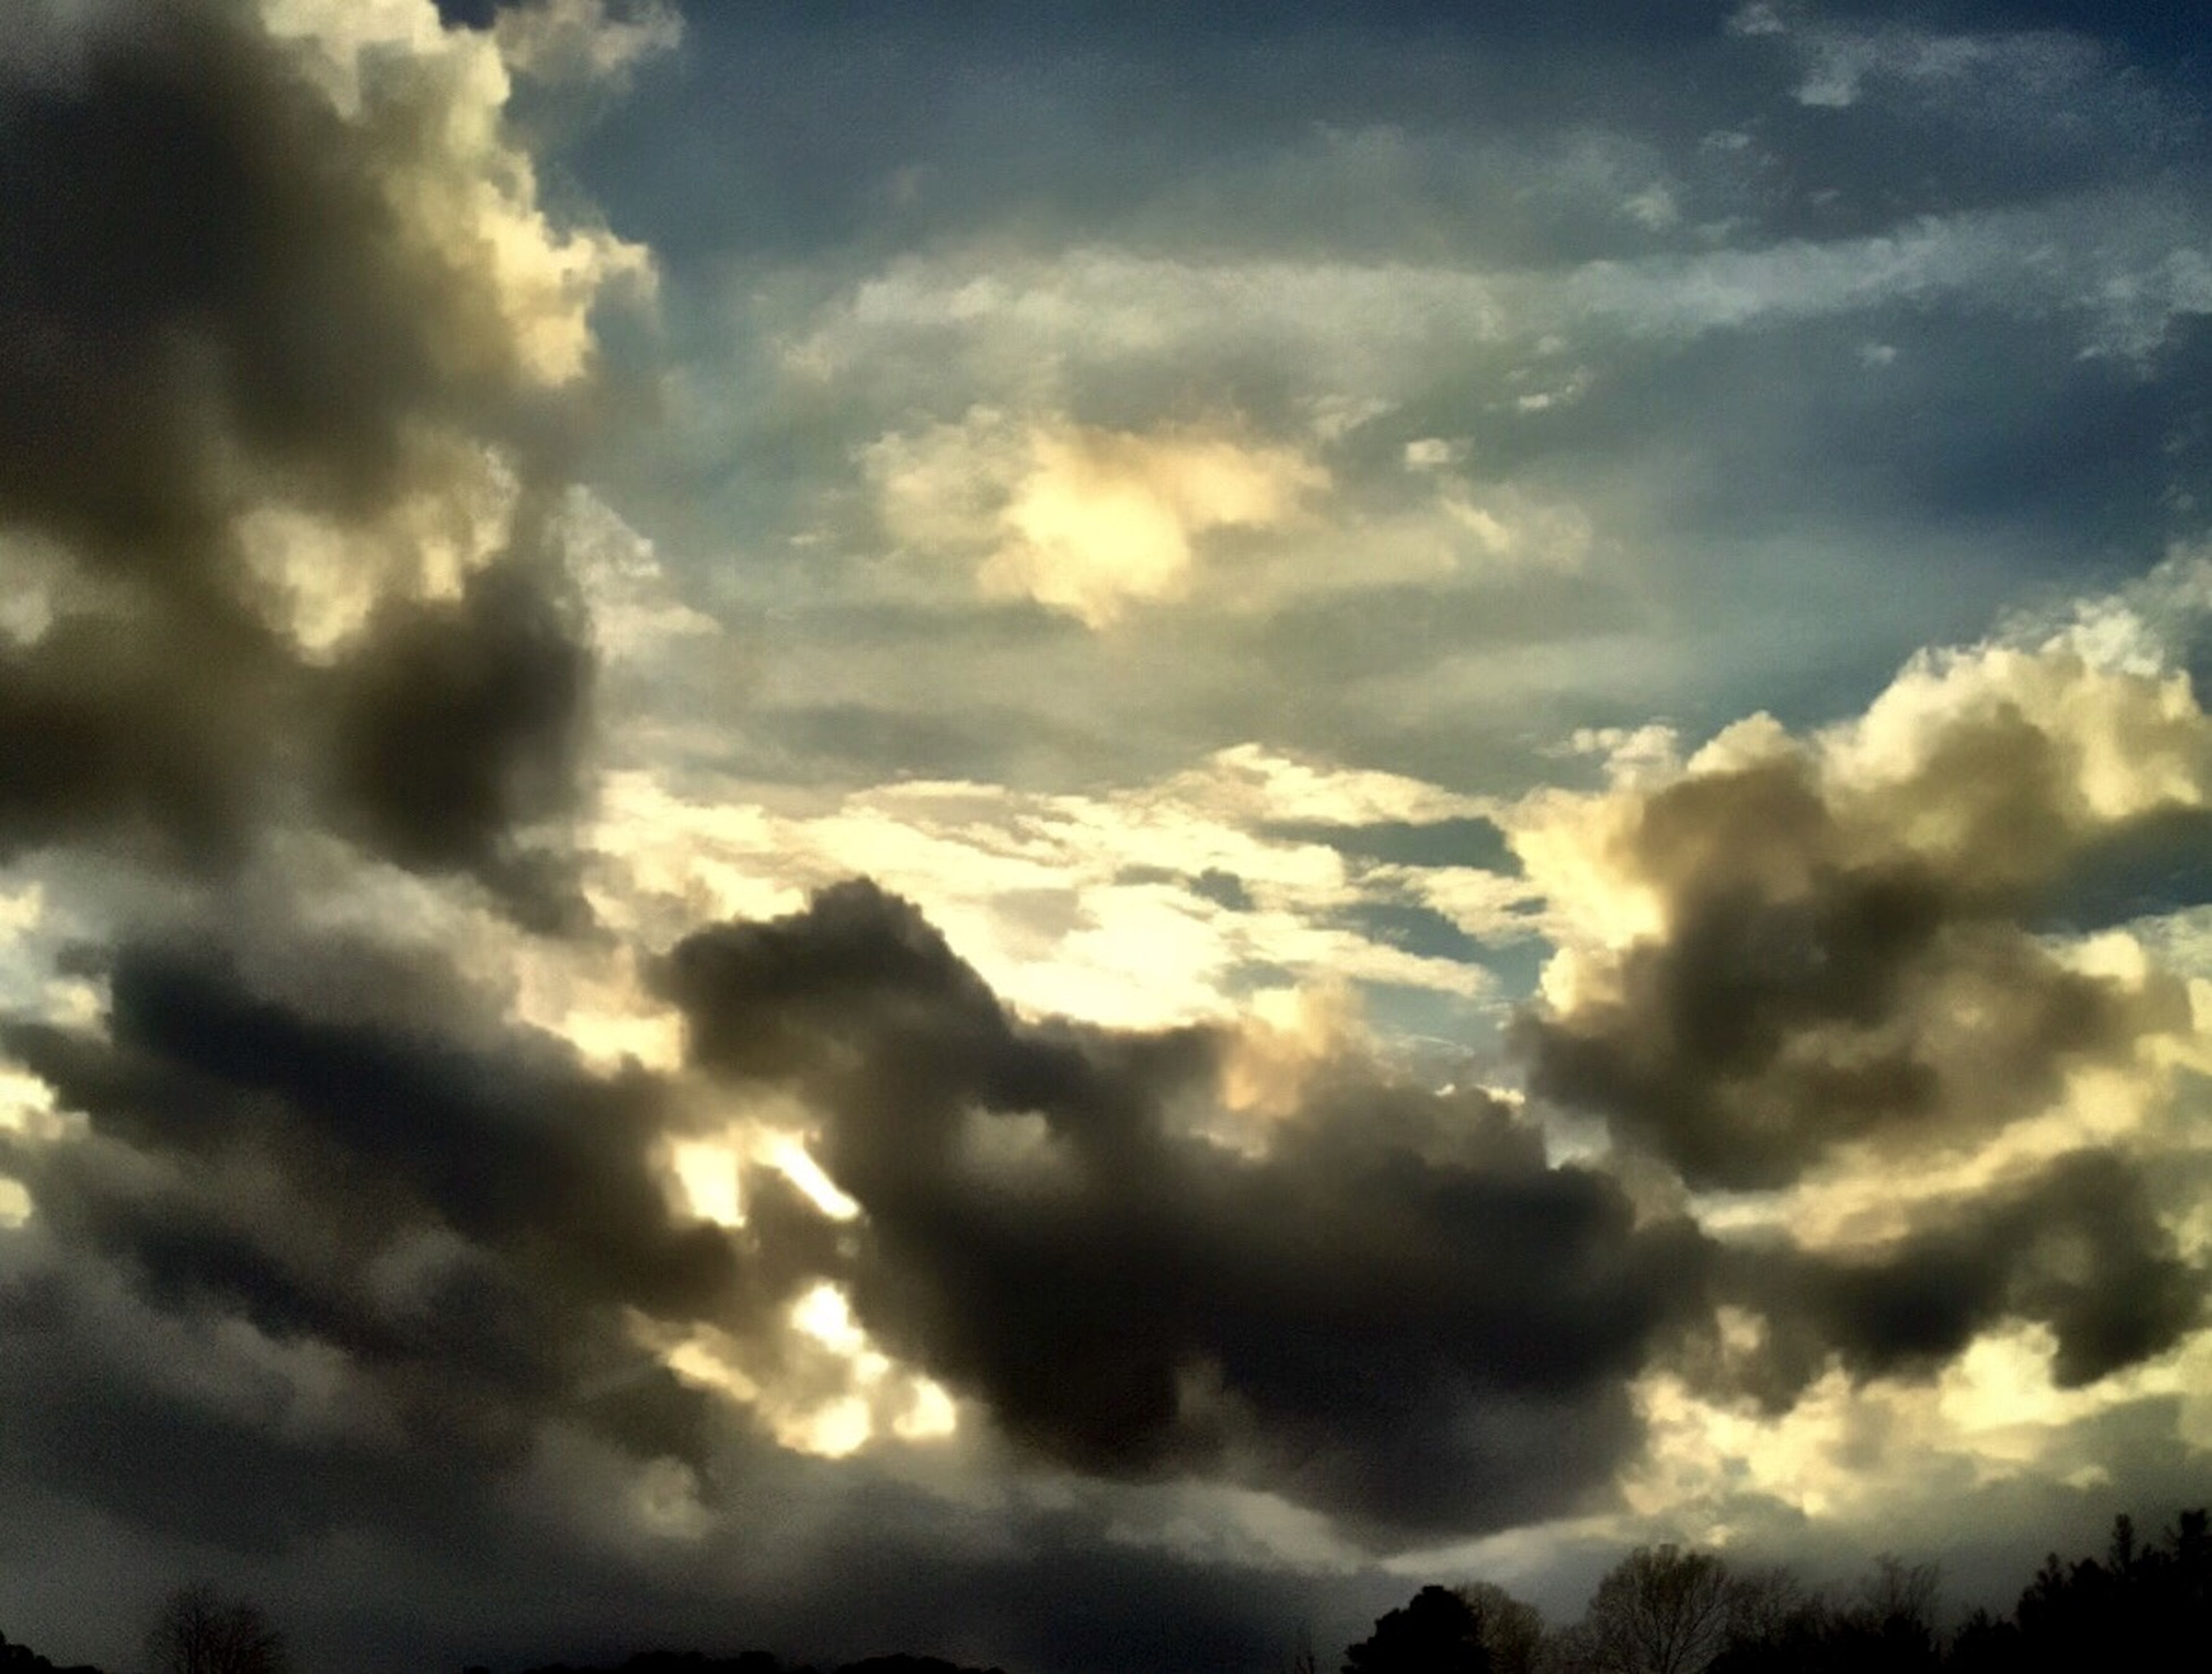 sky, cloud - sky, beauty in nature, scenics, tranquility, cloudy, cloudscape, tranquil scene, low angle view, nature, sky only, cloud, weather, idyllic, silhouette, sunset, overcast, dramatic sky, majestic, outdoors